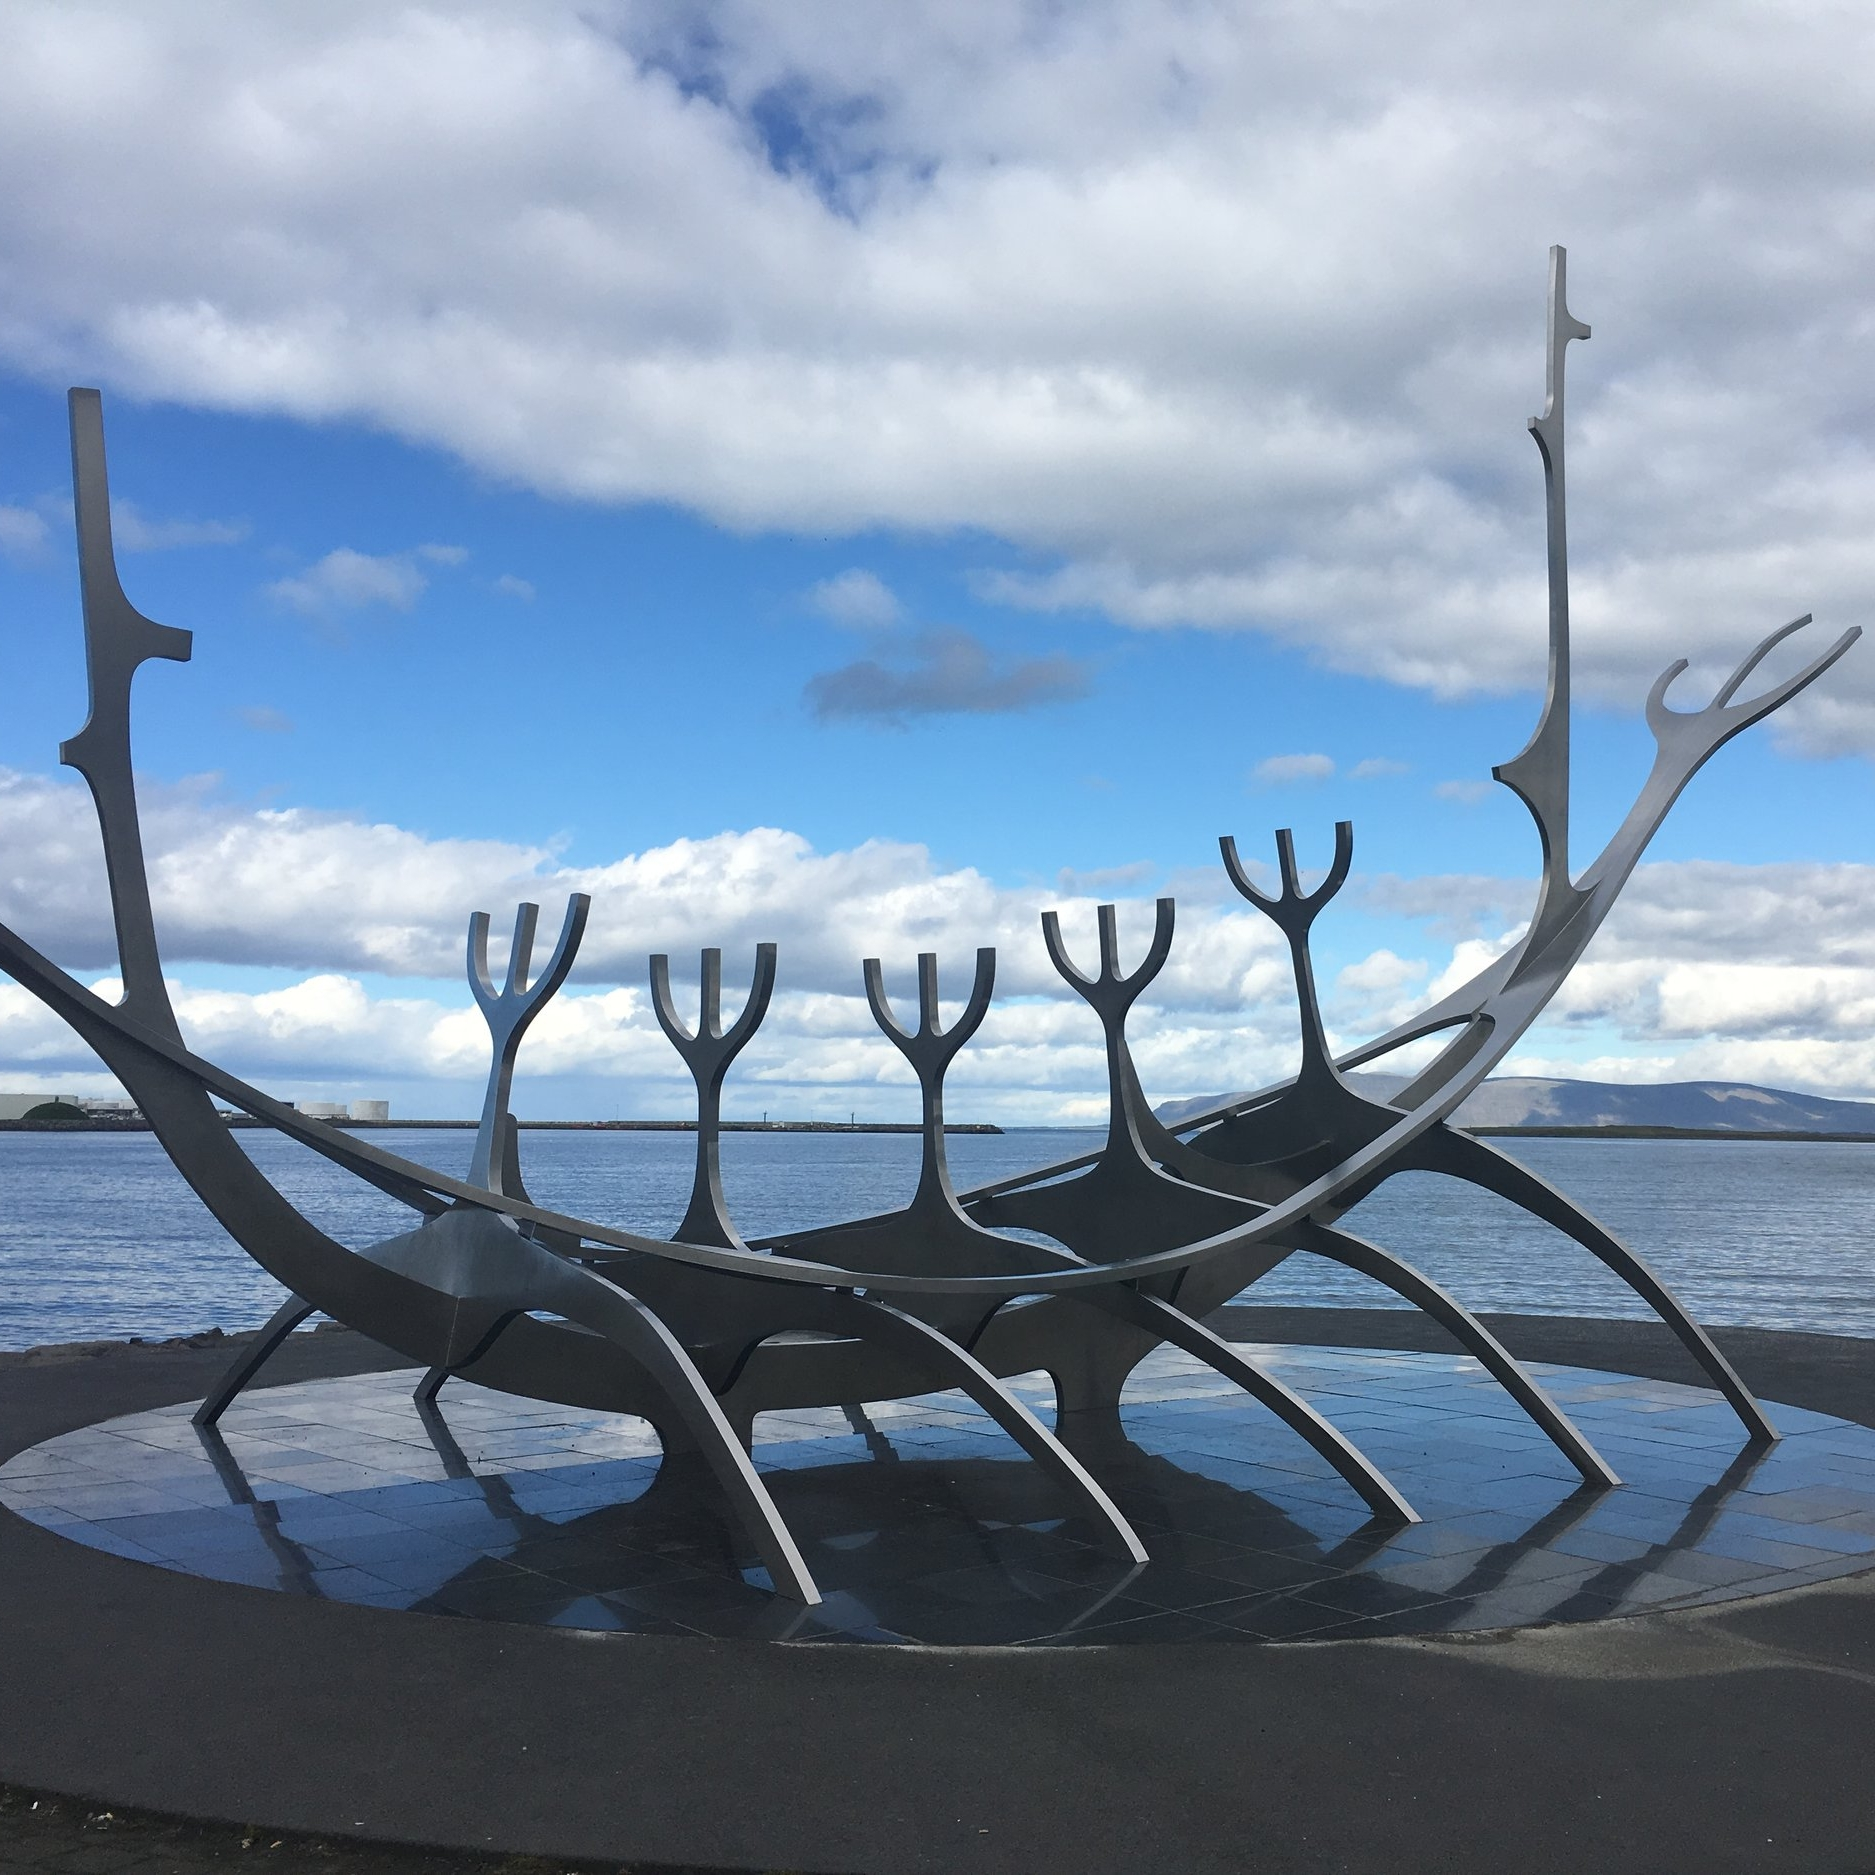 Suncraft, Reykjavik by The Doubtful Traveller